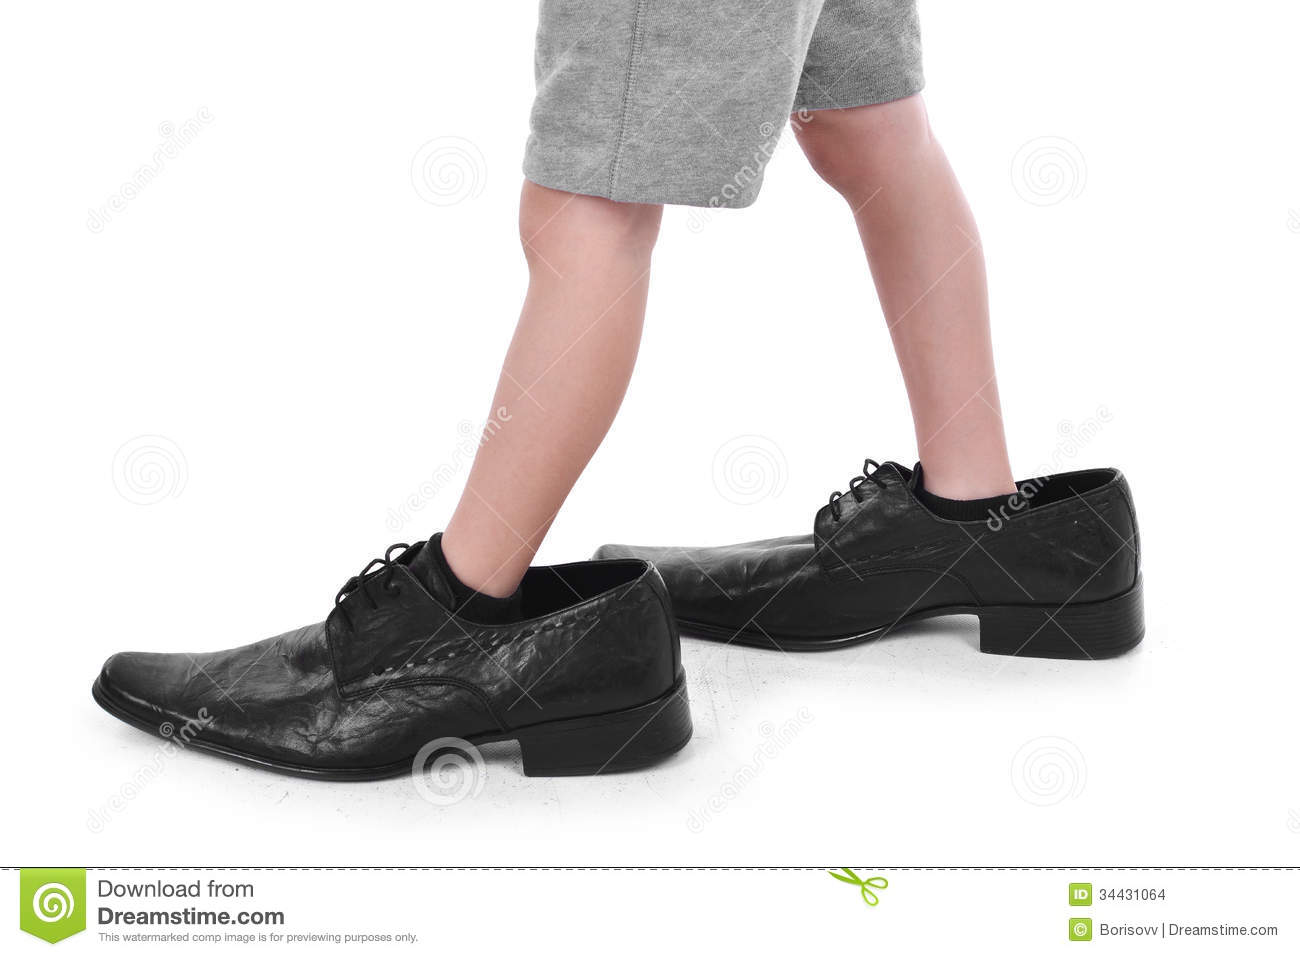 Big boy small boy clipart png freeuse library Child Walking Feet Clipart Boy S Little Feet In Big Black #fcmzlx ... png freeuse library